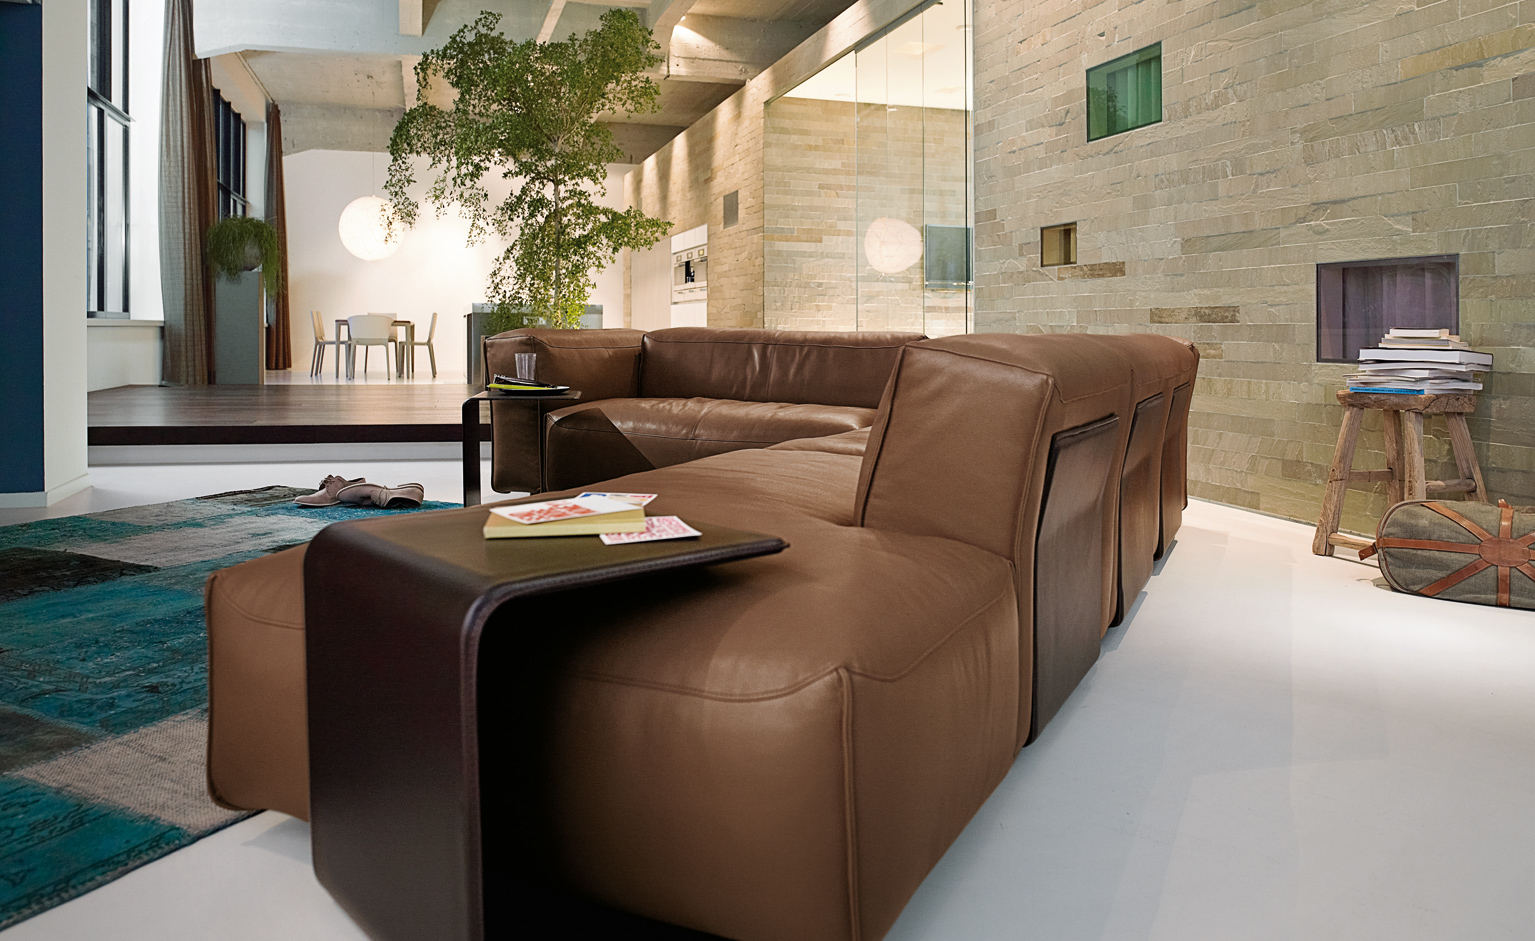 Rolf benz mio couch for Benz couch